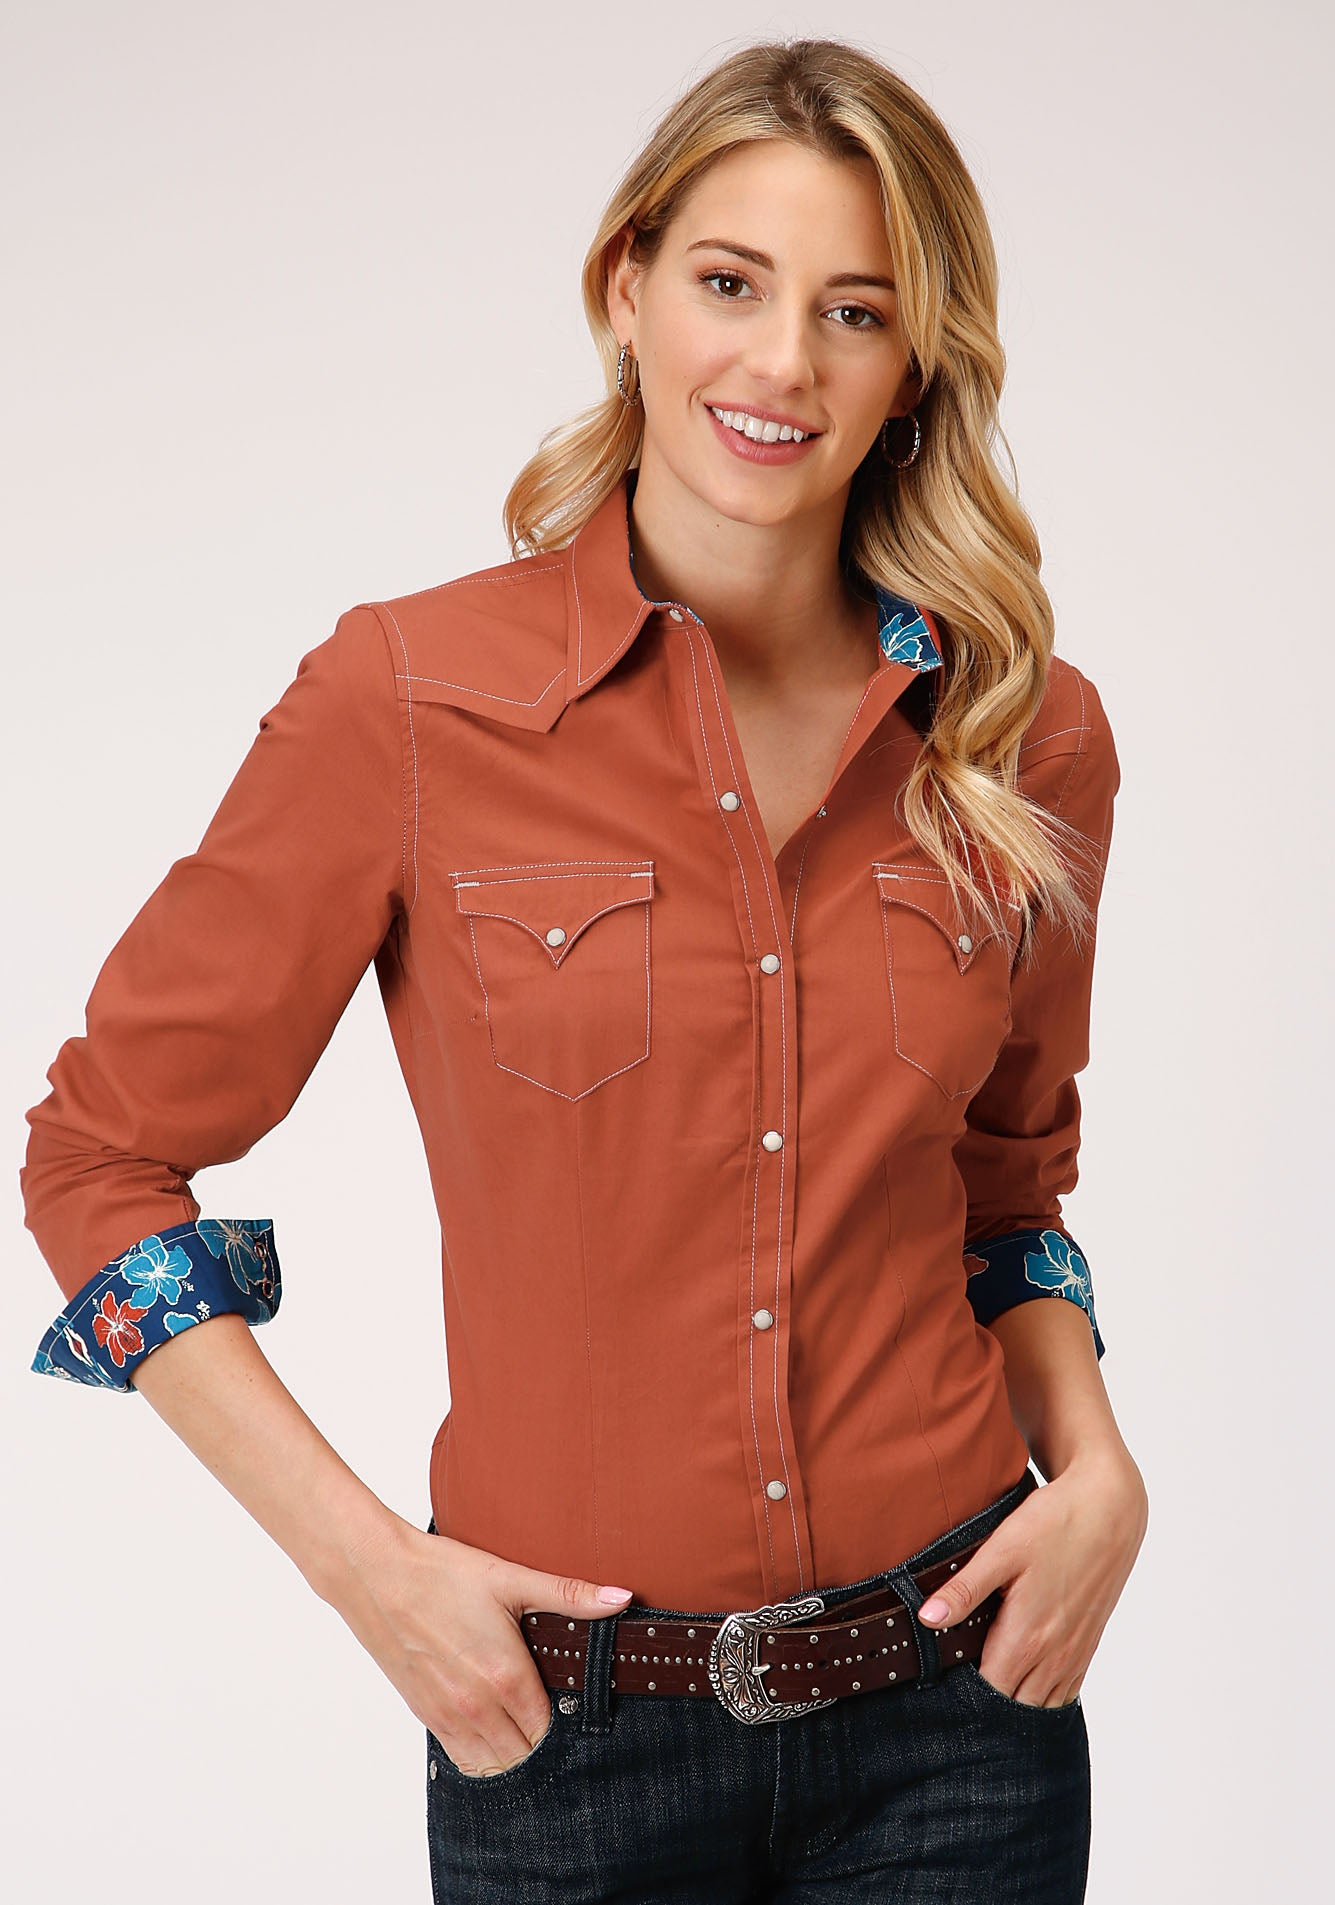 ROPER WOMENS ORANGE 00106 SOLID POPLIN - ORANGE WEST MADE COLLECTION LONG SLEEVE